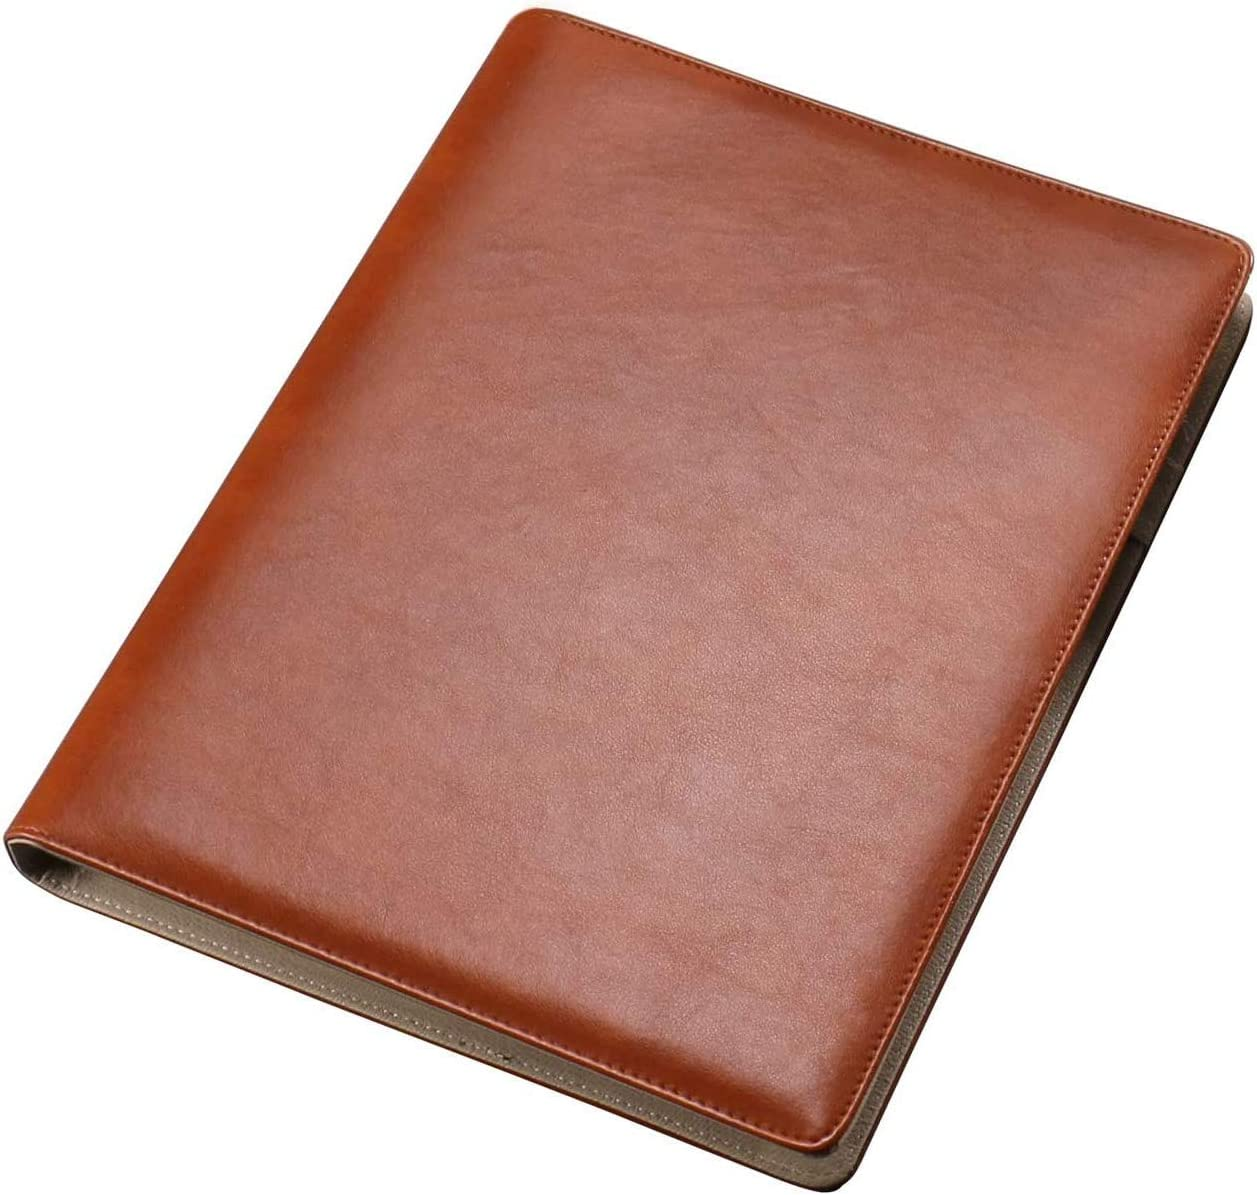 AHGXG Business Card Book Holder, Leather Organizer Binder with Folder Pen Holder, Name Card Organizer Credit Card Holder, 600 Cards, Brown Color